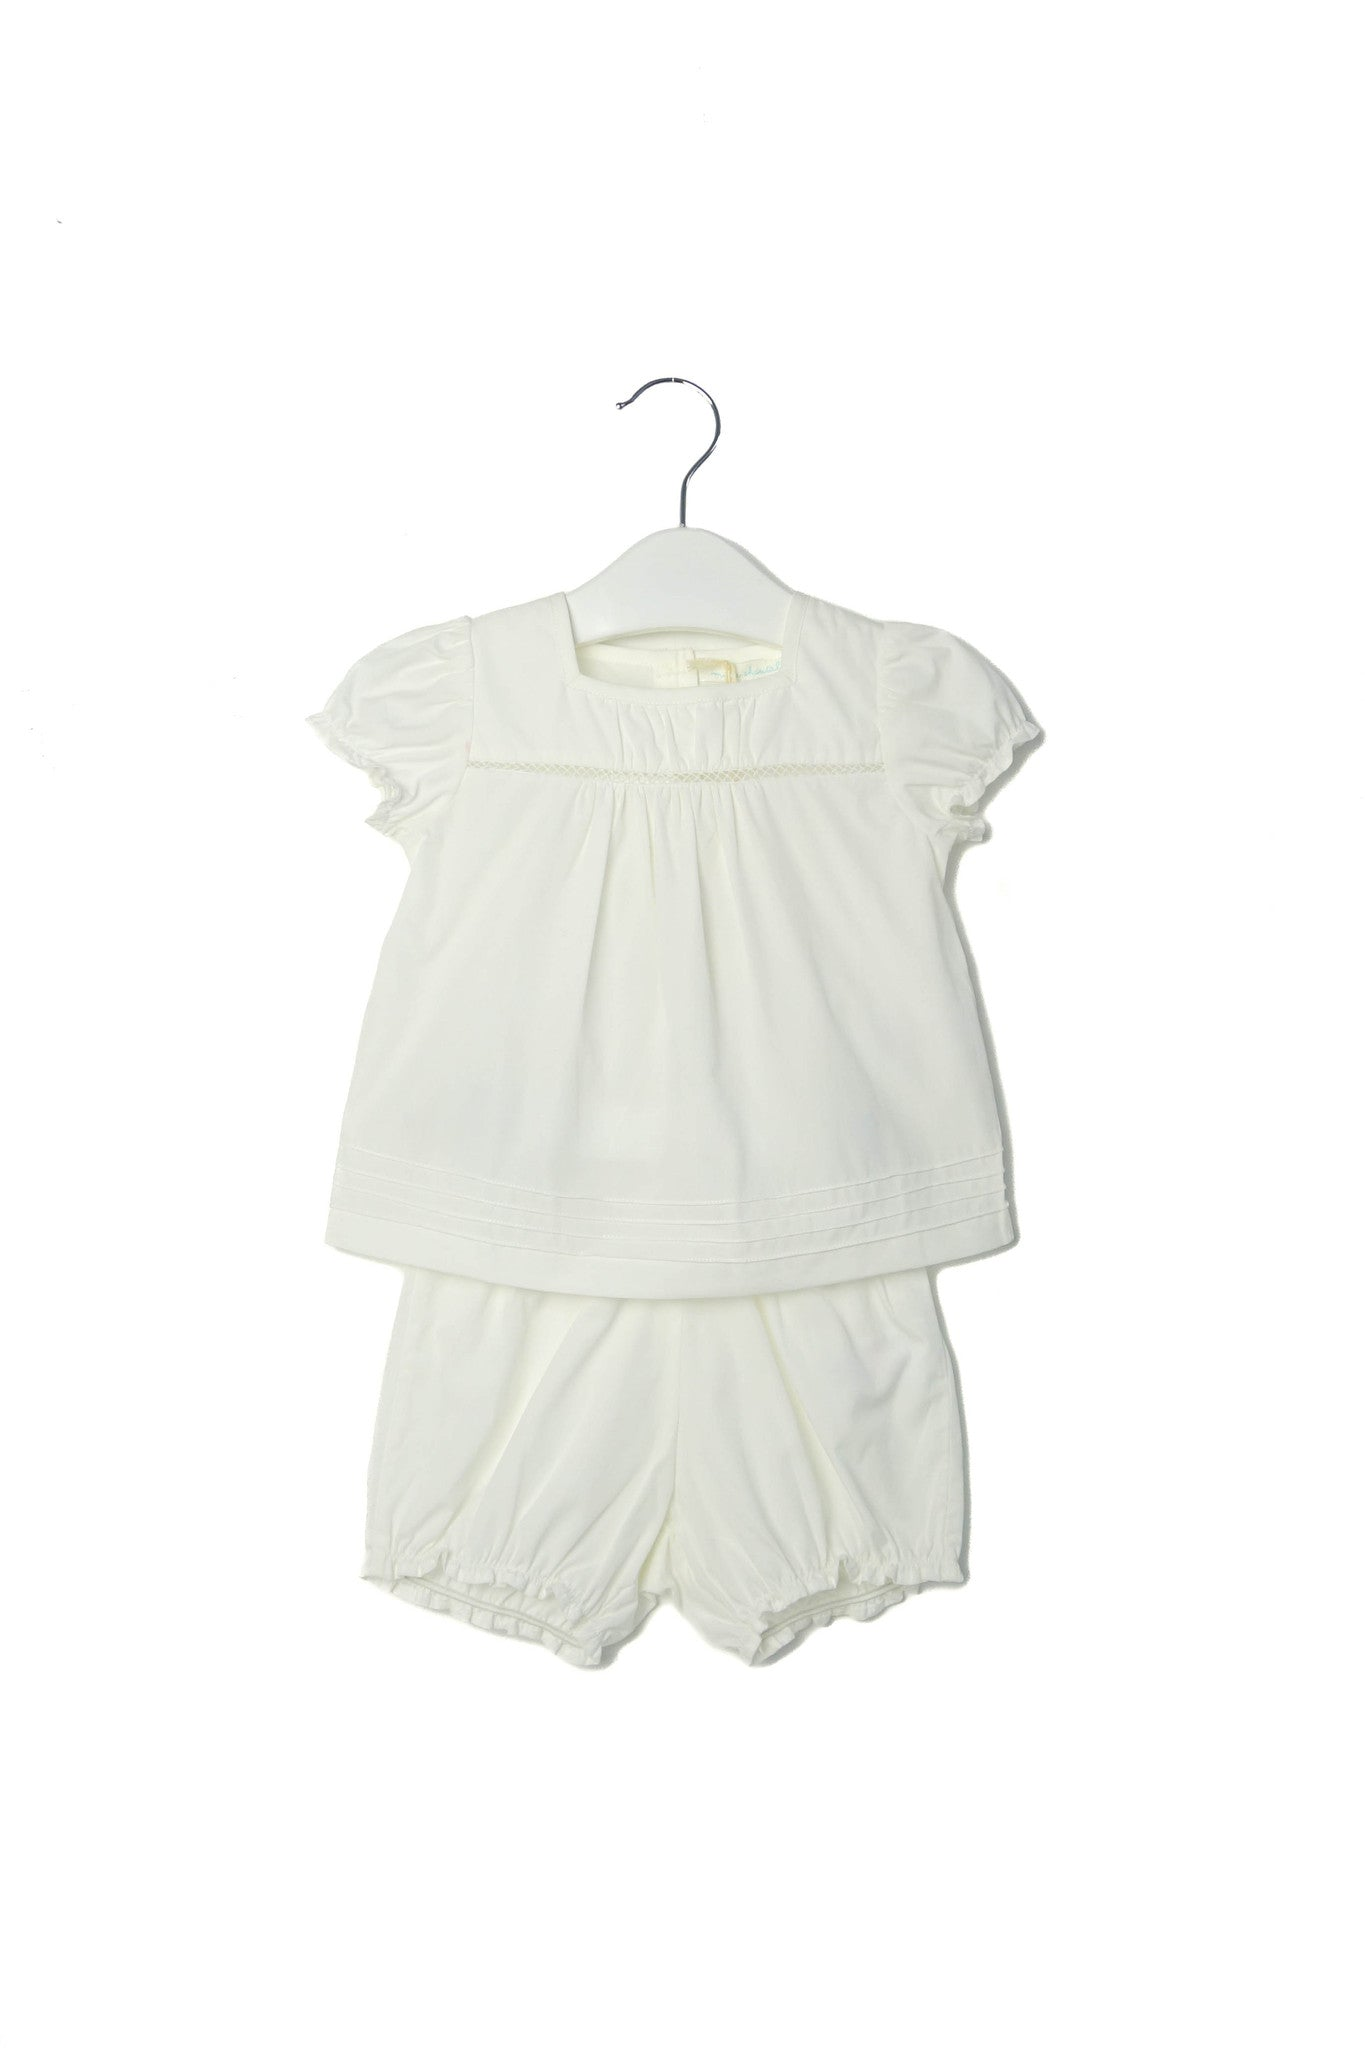 10003216 Marie Chantal Baby~Top and Shorts 12M at Retykle